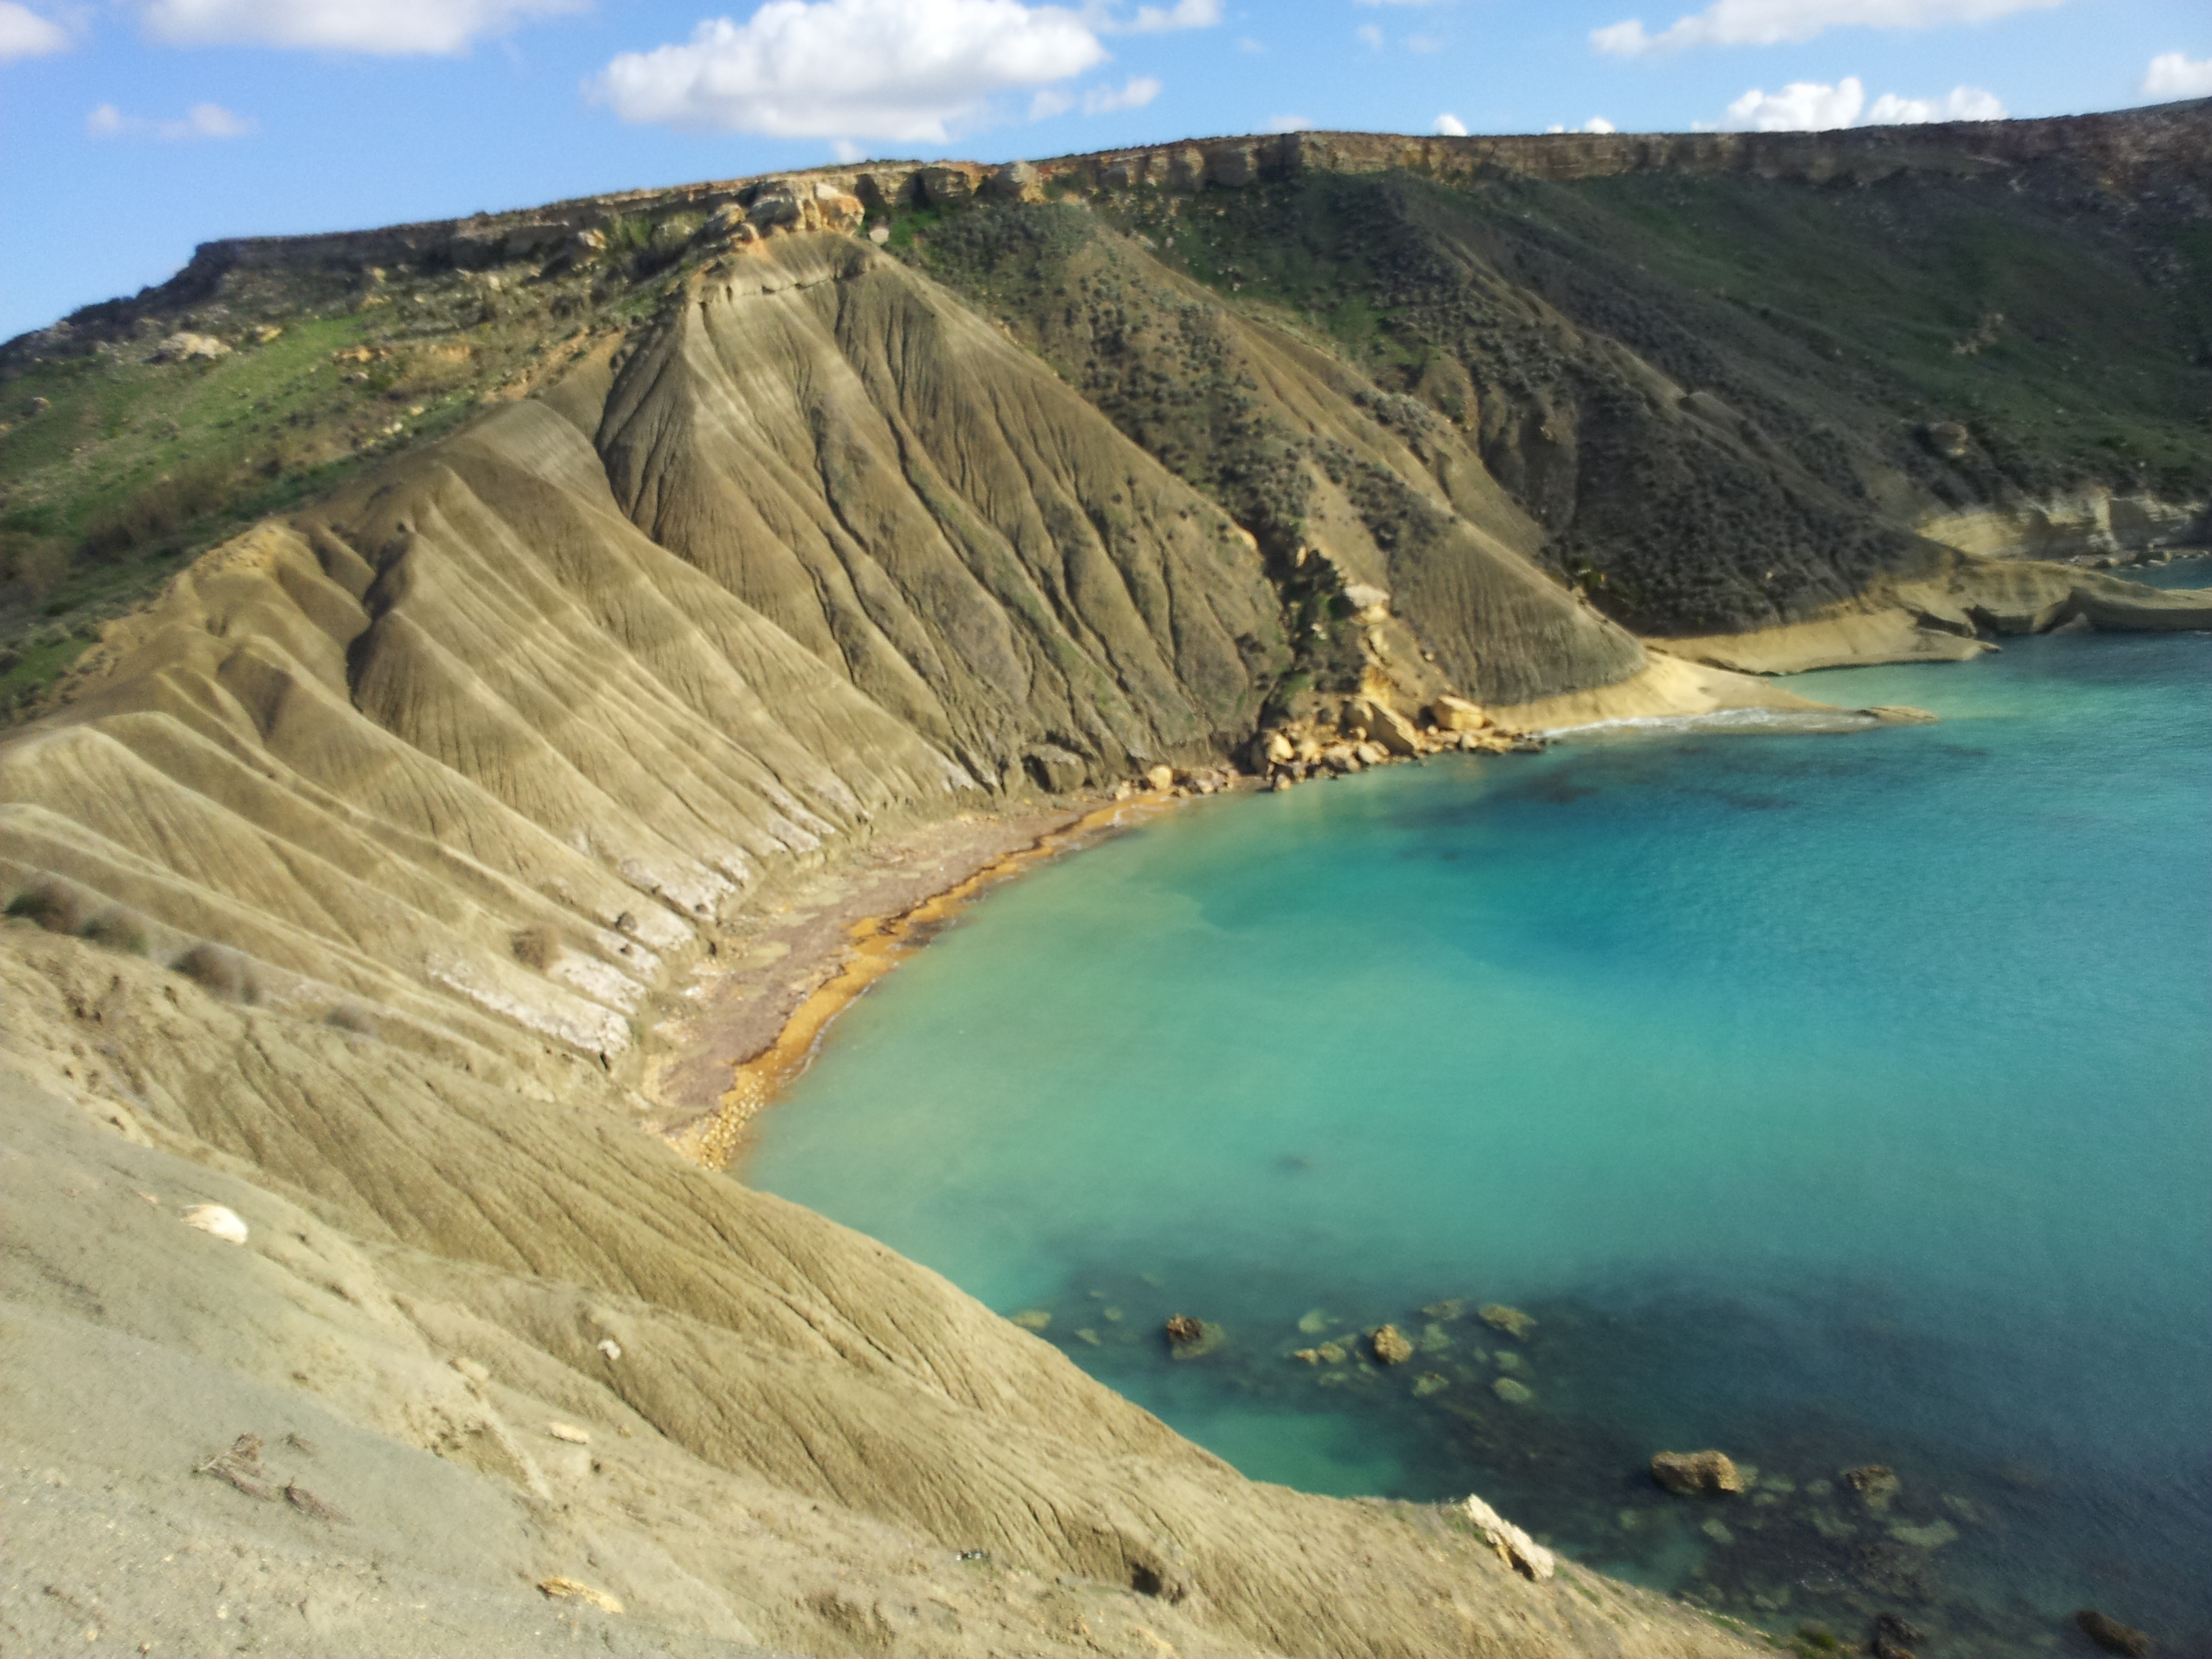 The spectacular Blue Clay slopes at Gnejna Bay, Malta. (Ritienne Gauci, 2014).